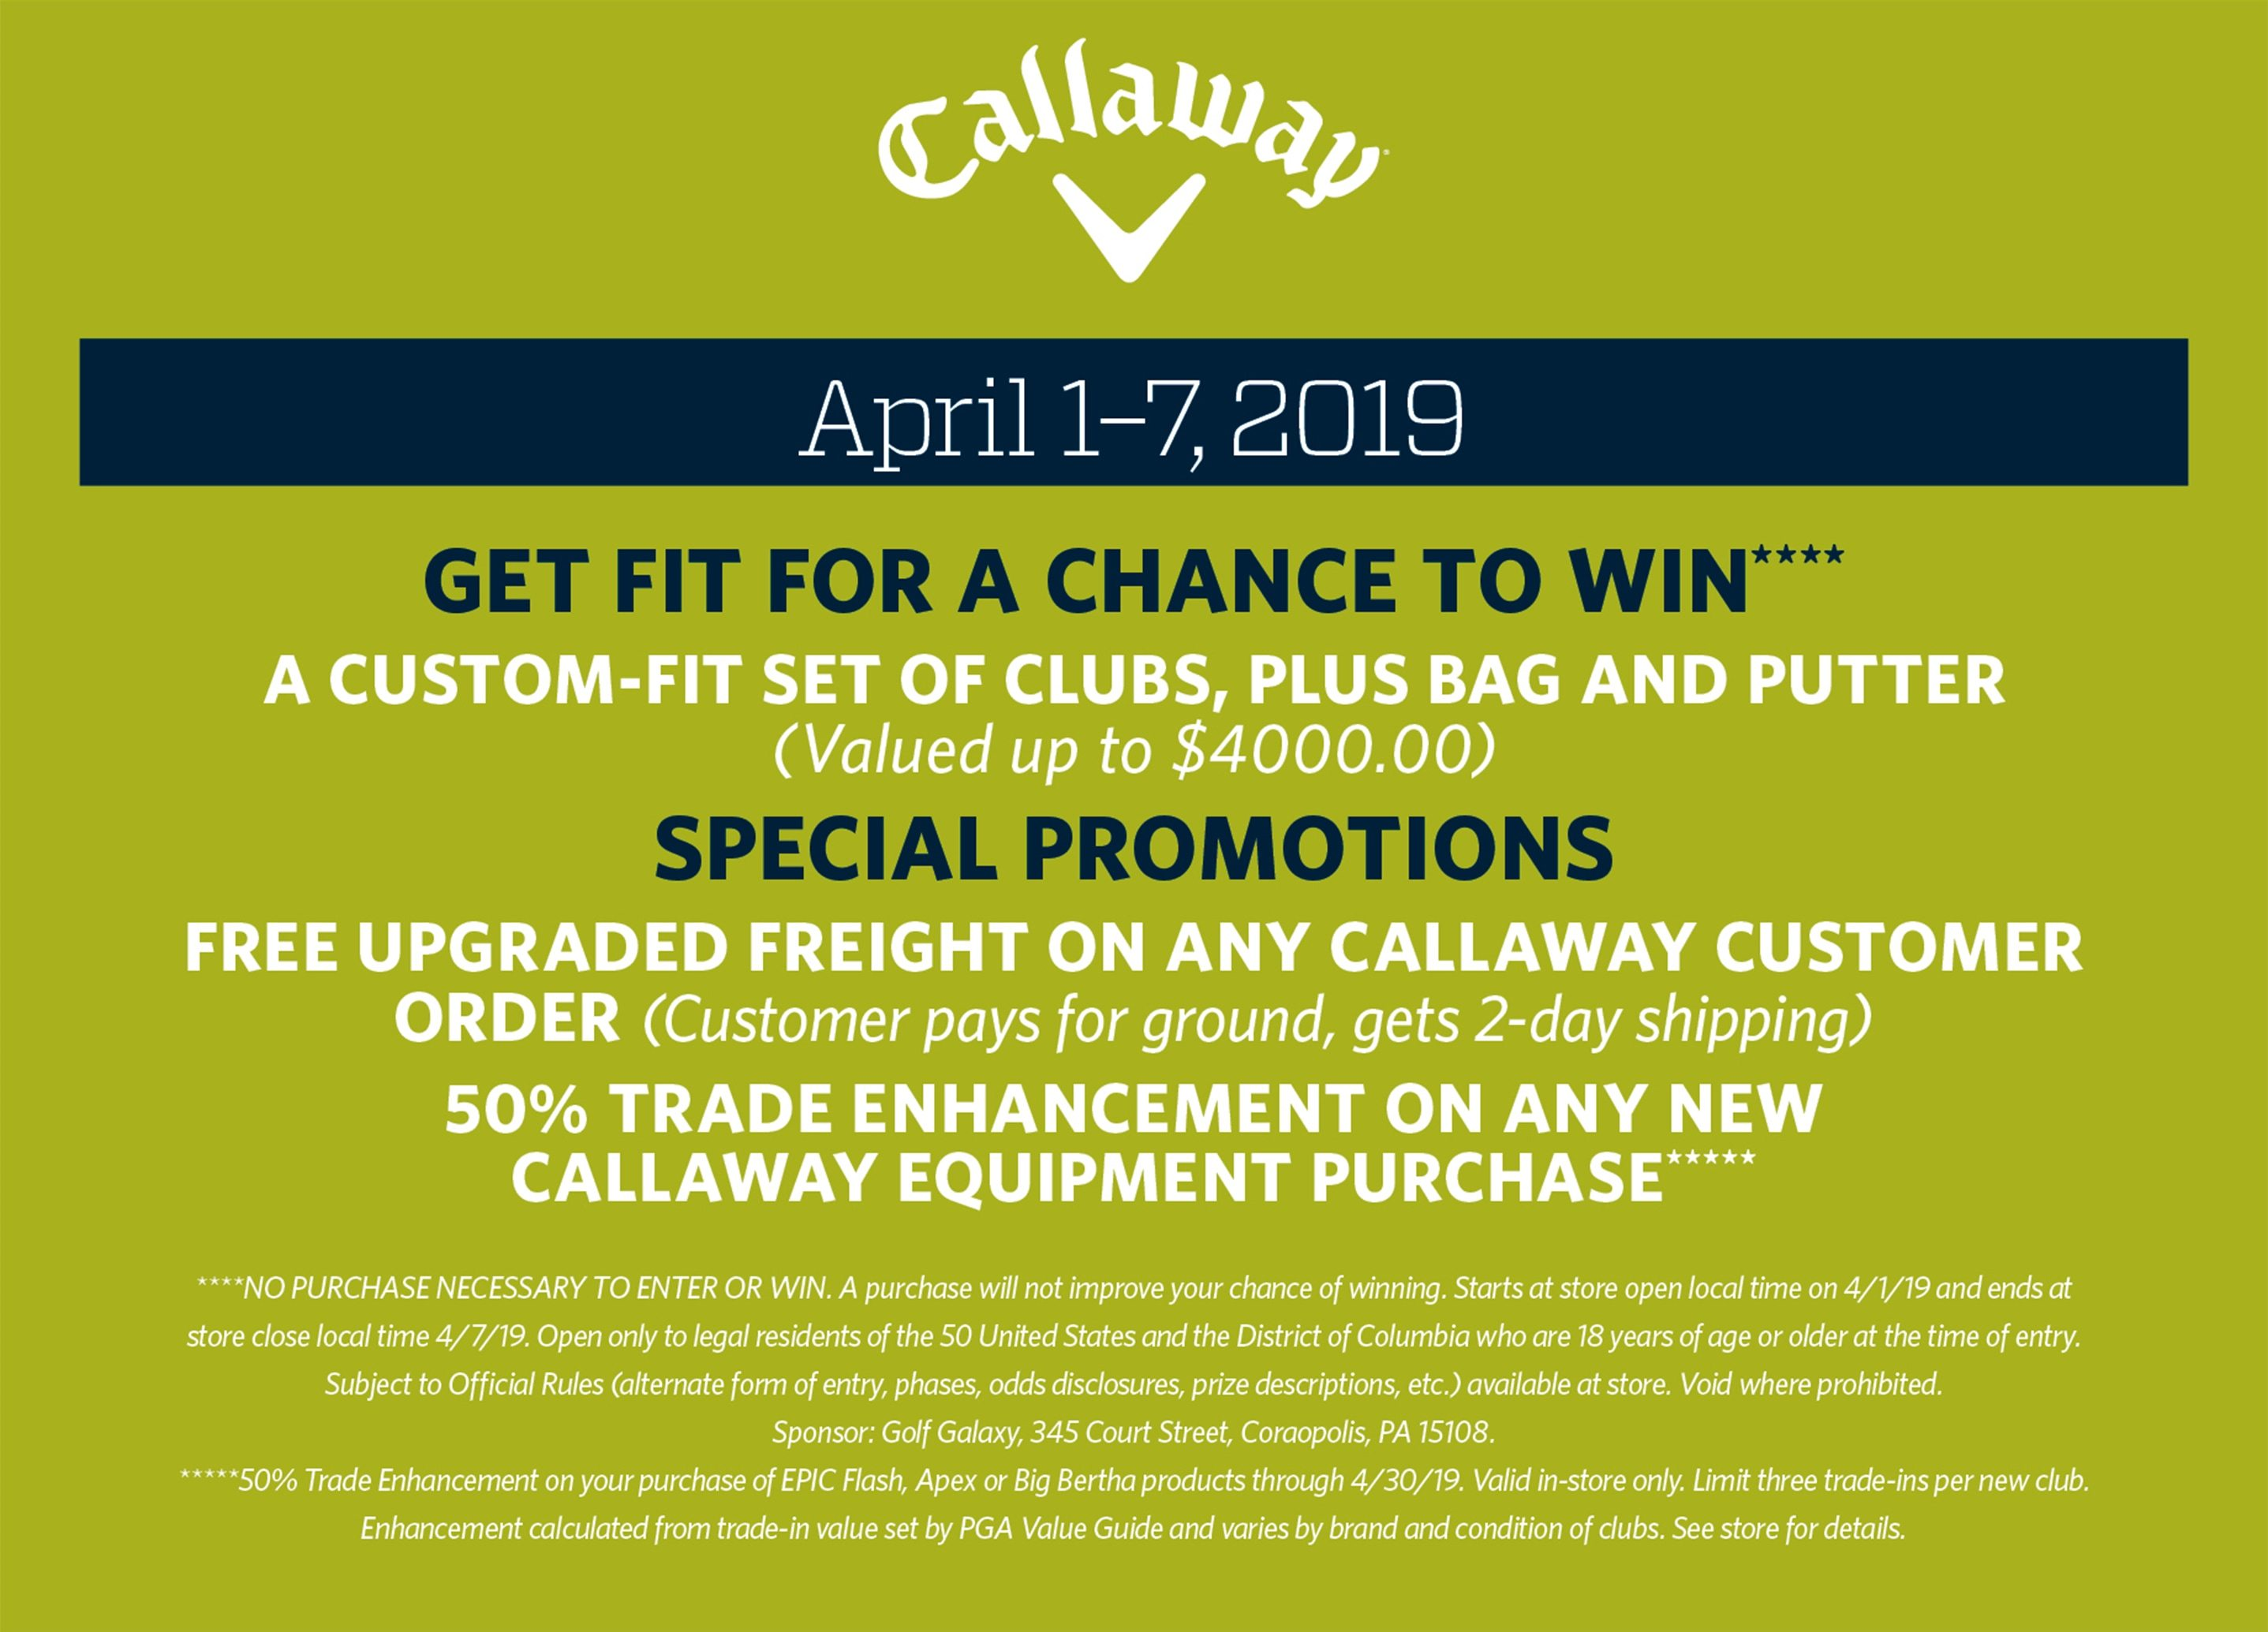 Callaway | April 1–7, 2019 | GET FIT for a Chance to Win**** A custom-fit set of clubs, plus bag and putter (Valued up to $4000.00) Special promotions Free upgraded freight on any Callaway Customer Order (Customer pays for ground, gets 2-day shipping) 50% trade enhancement on any New Callaway Equipment purchase***** ****NO PURCHASE NECESSARY TO ENTER OR WIN. A purchase will not improve your chance of winning. Starts at store open local time on 4/1/19 and ends at store close local time 4/7/19. Open only to legal residents of the 50 United States and the District of Columbia who are 18 years of age or older at the time of entry. Subject to Official Rules (alternate form of entry, phases, odds disclosures, prize descriptions, etc.) available at store. Void where prohibited. Sponsor: Golf Galaxy, 345 Court Street, Coraopolis, PA 15108. *****50% Trade Enhancement on your purchase of EPIC Flash, Apex or Big Bertha products through 4/30/19. Valid in-store only. Limit three trade-ins per new club. Enhancement calculated from trade-in value set by PGA Value Guide and varies by brand and condition of clubs. See store for details.